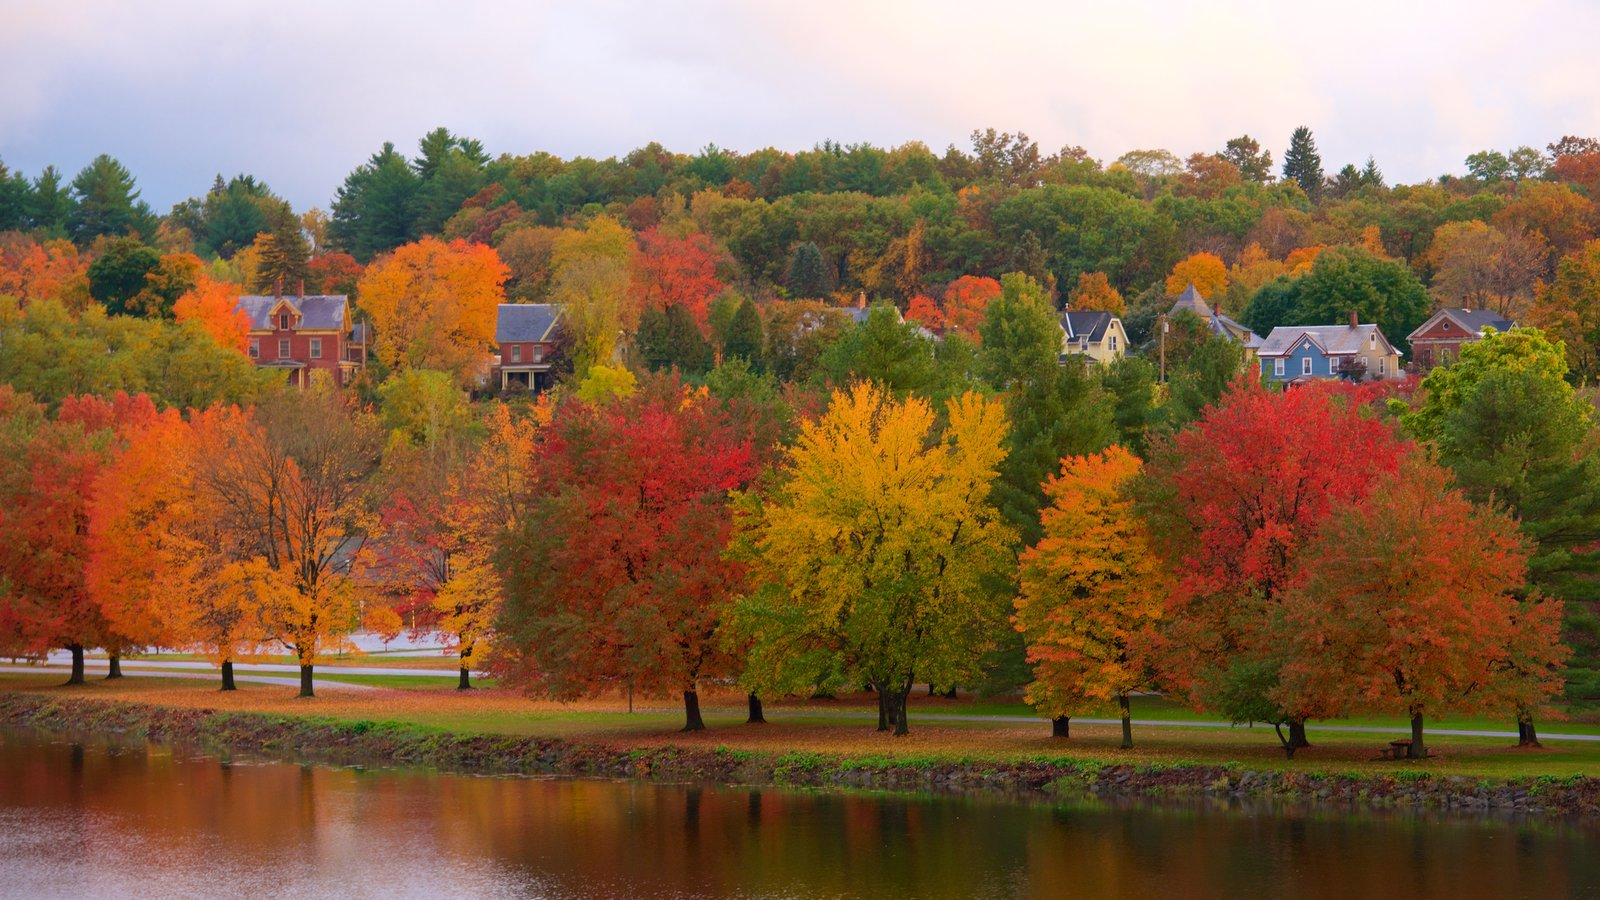 Turners Falls which includes a river or creek and autumn leaves